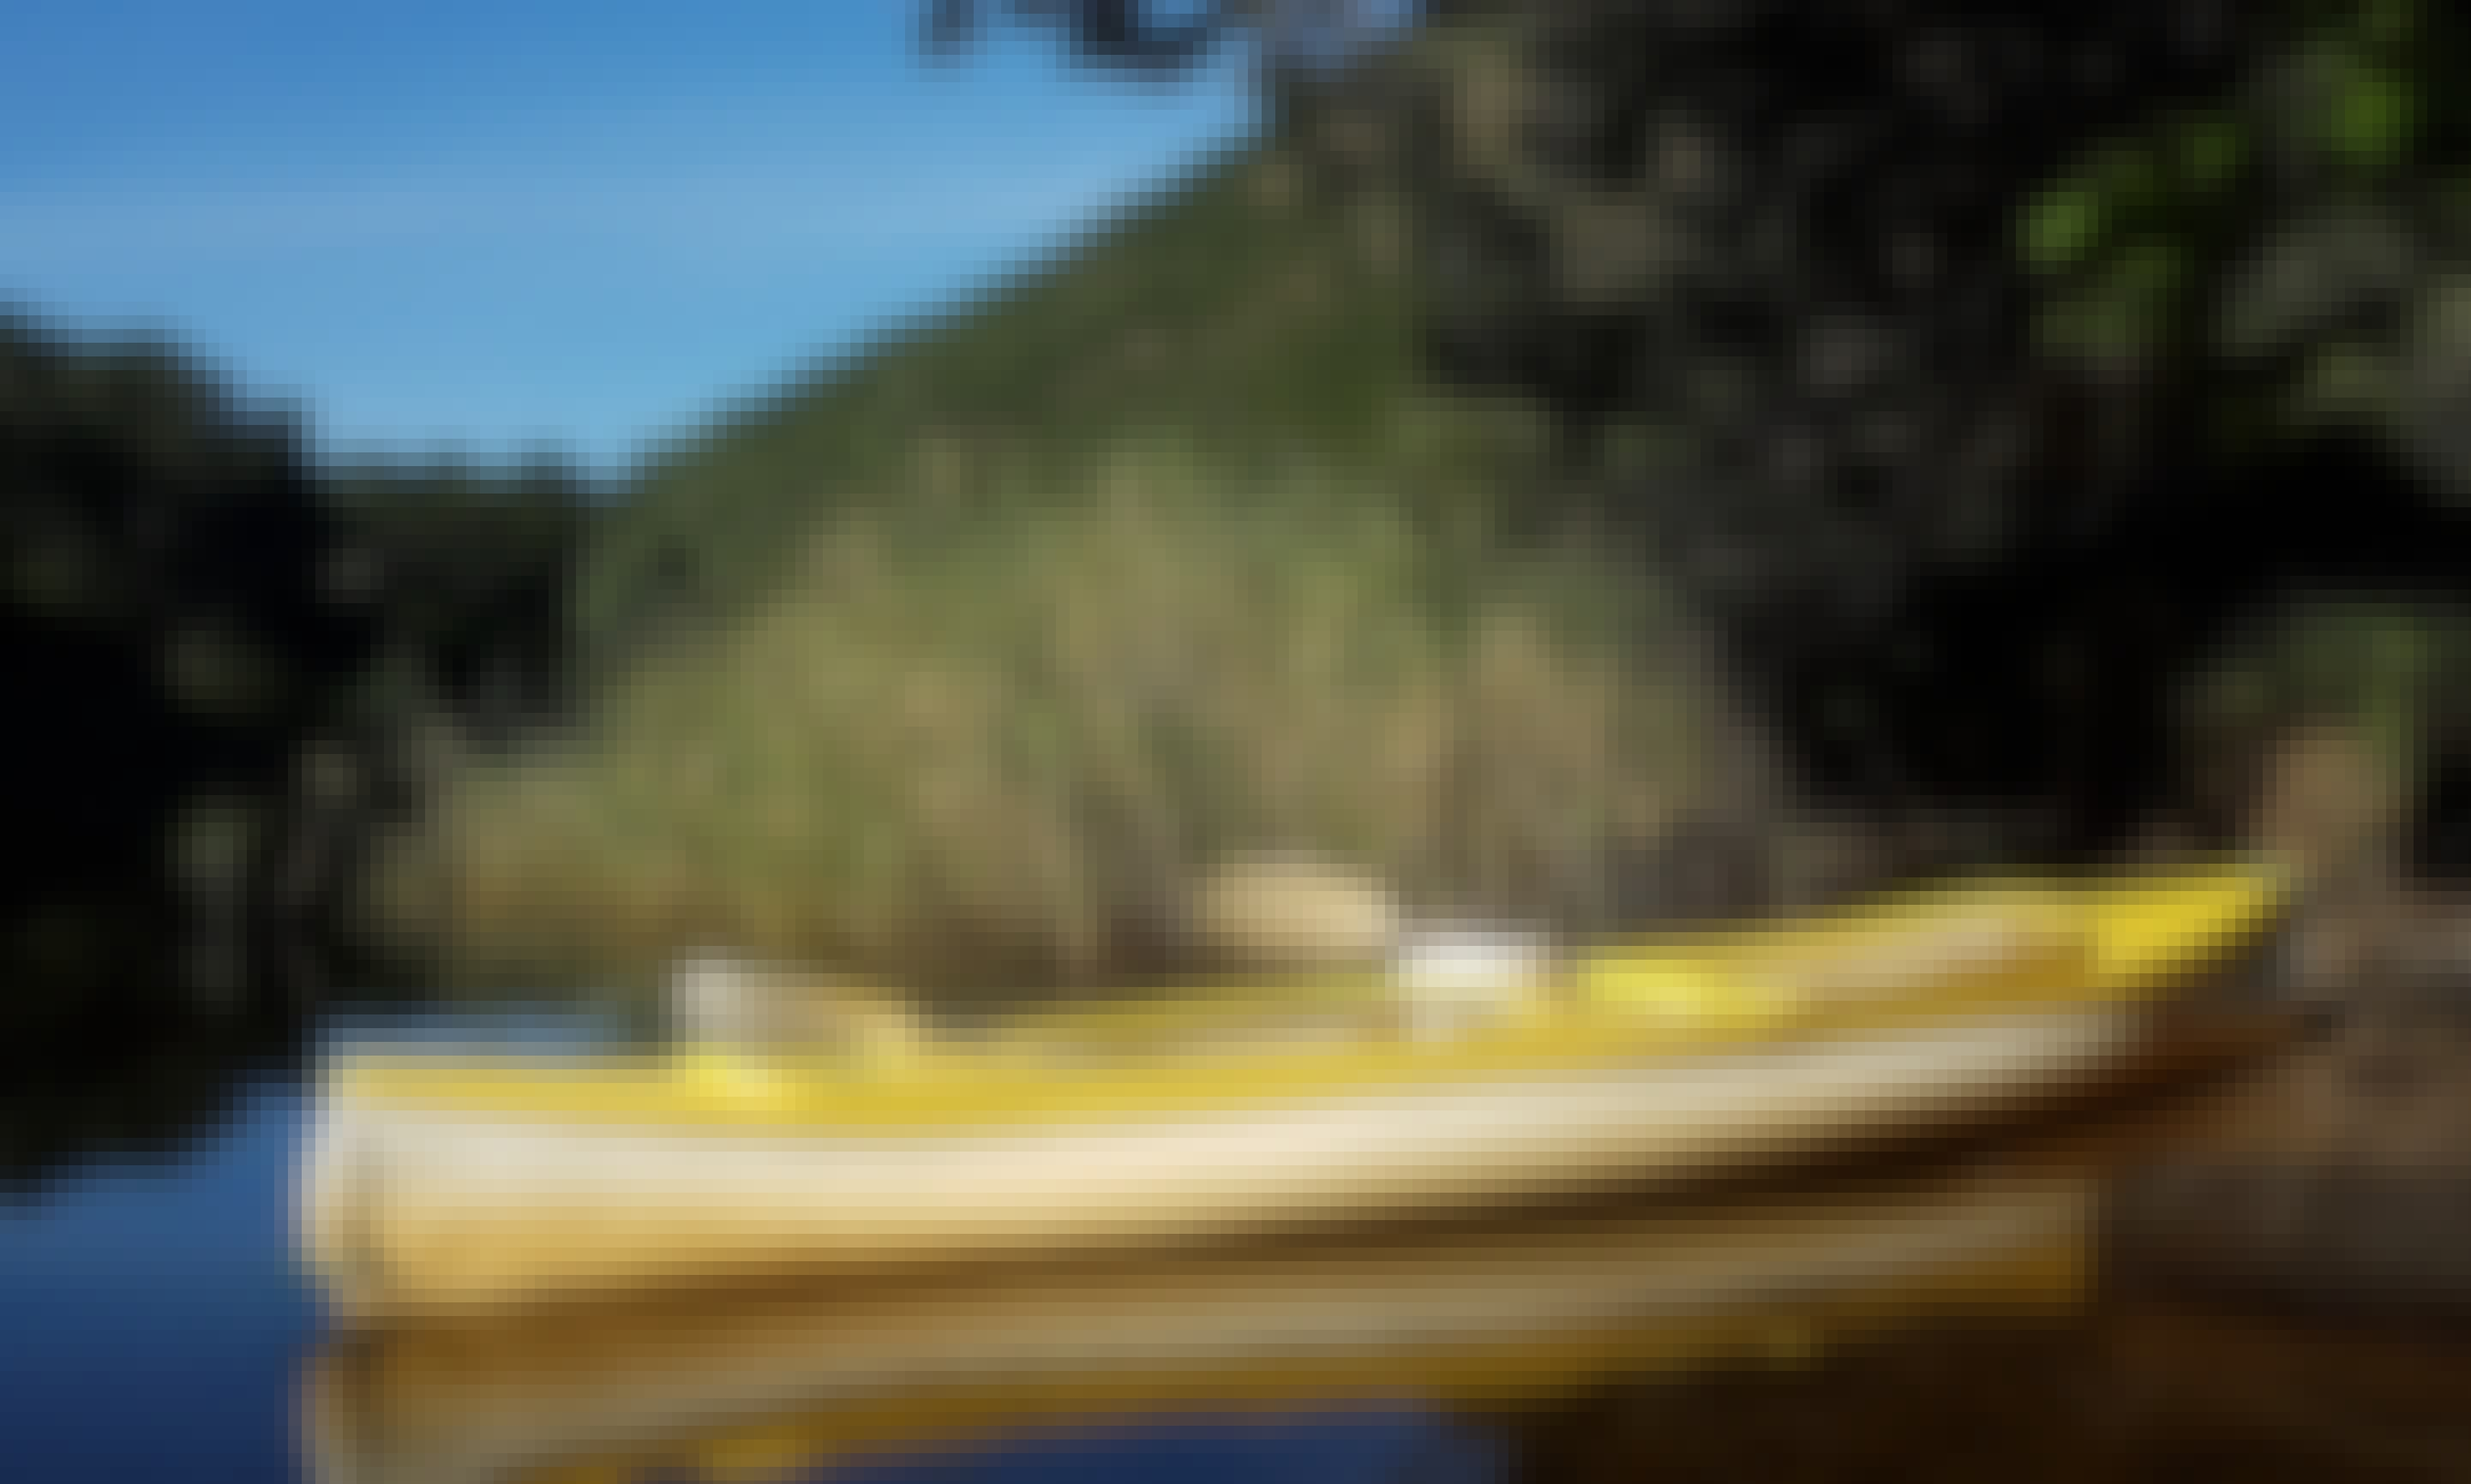 Canoe and Kayak Hire & Tours in Wilderness, South Africa